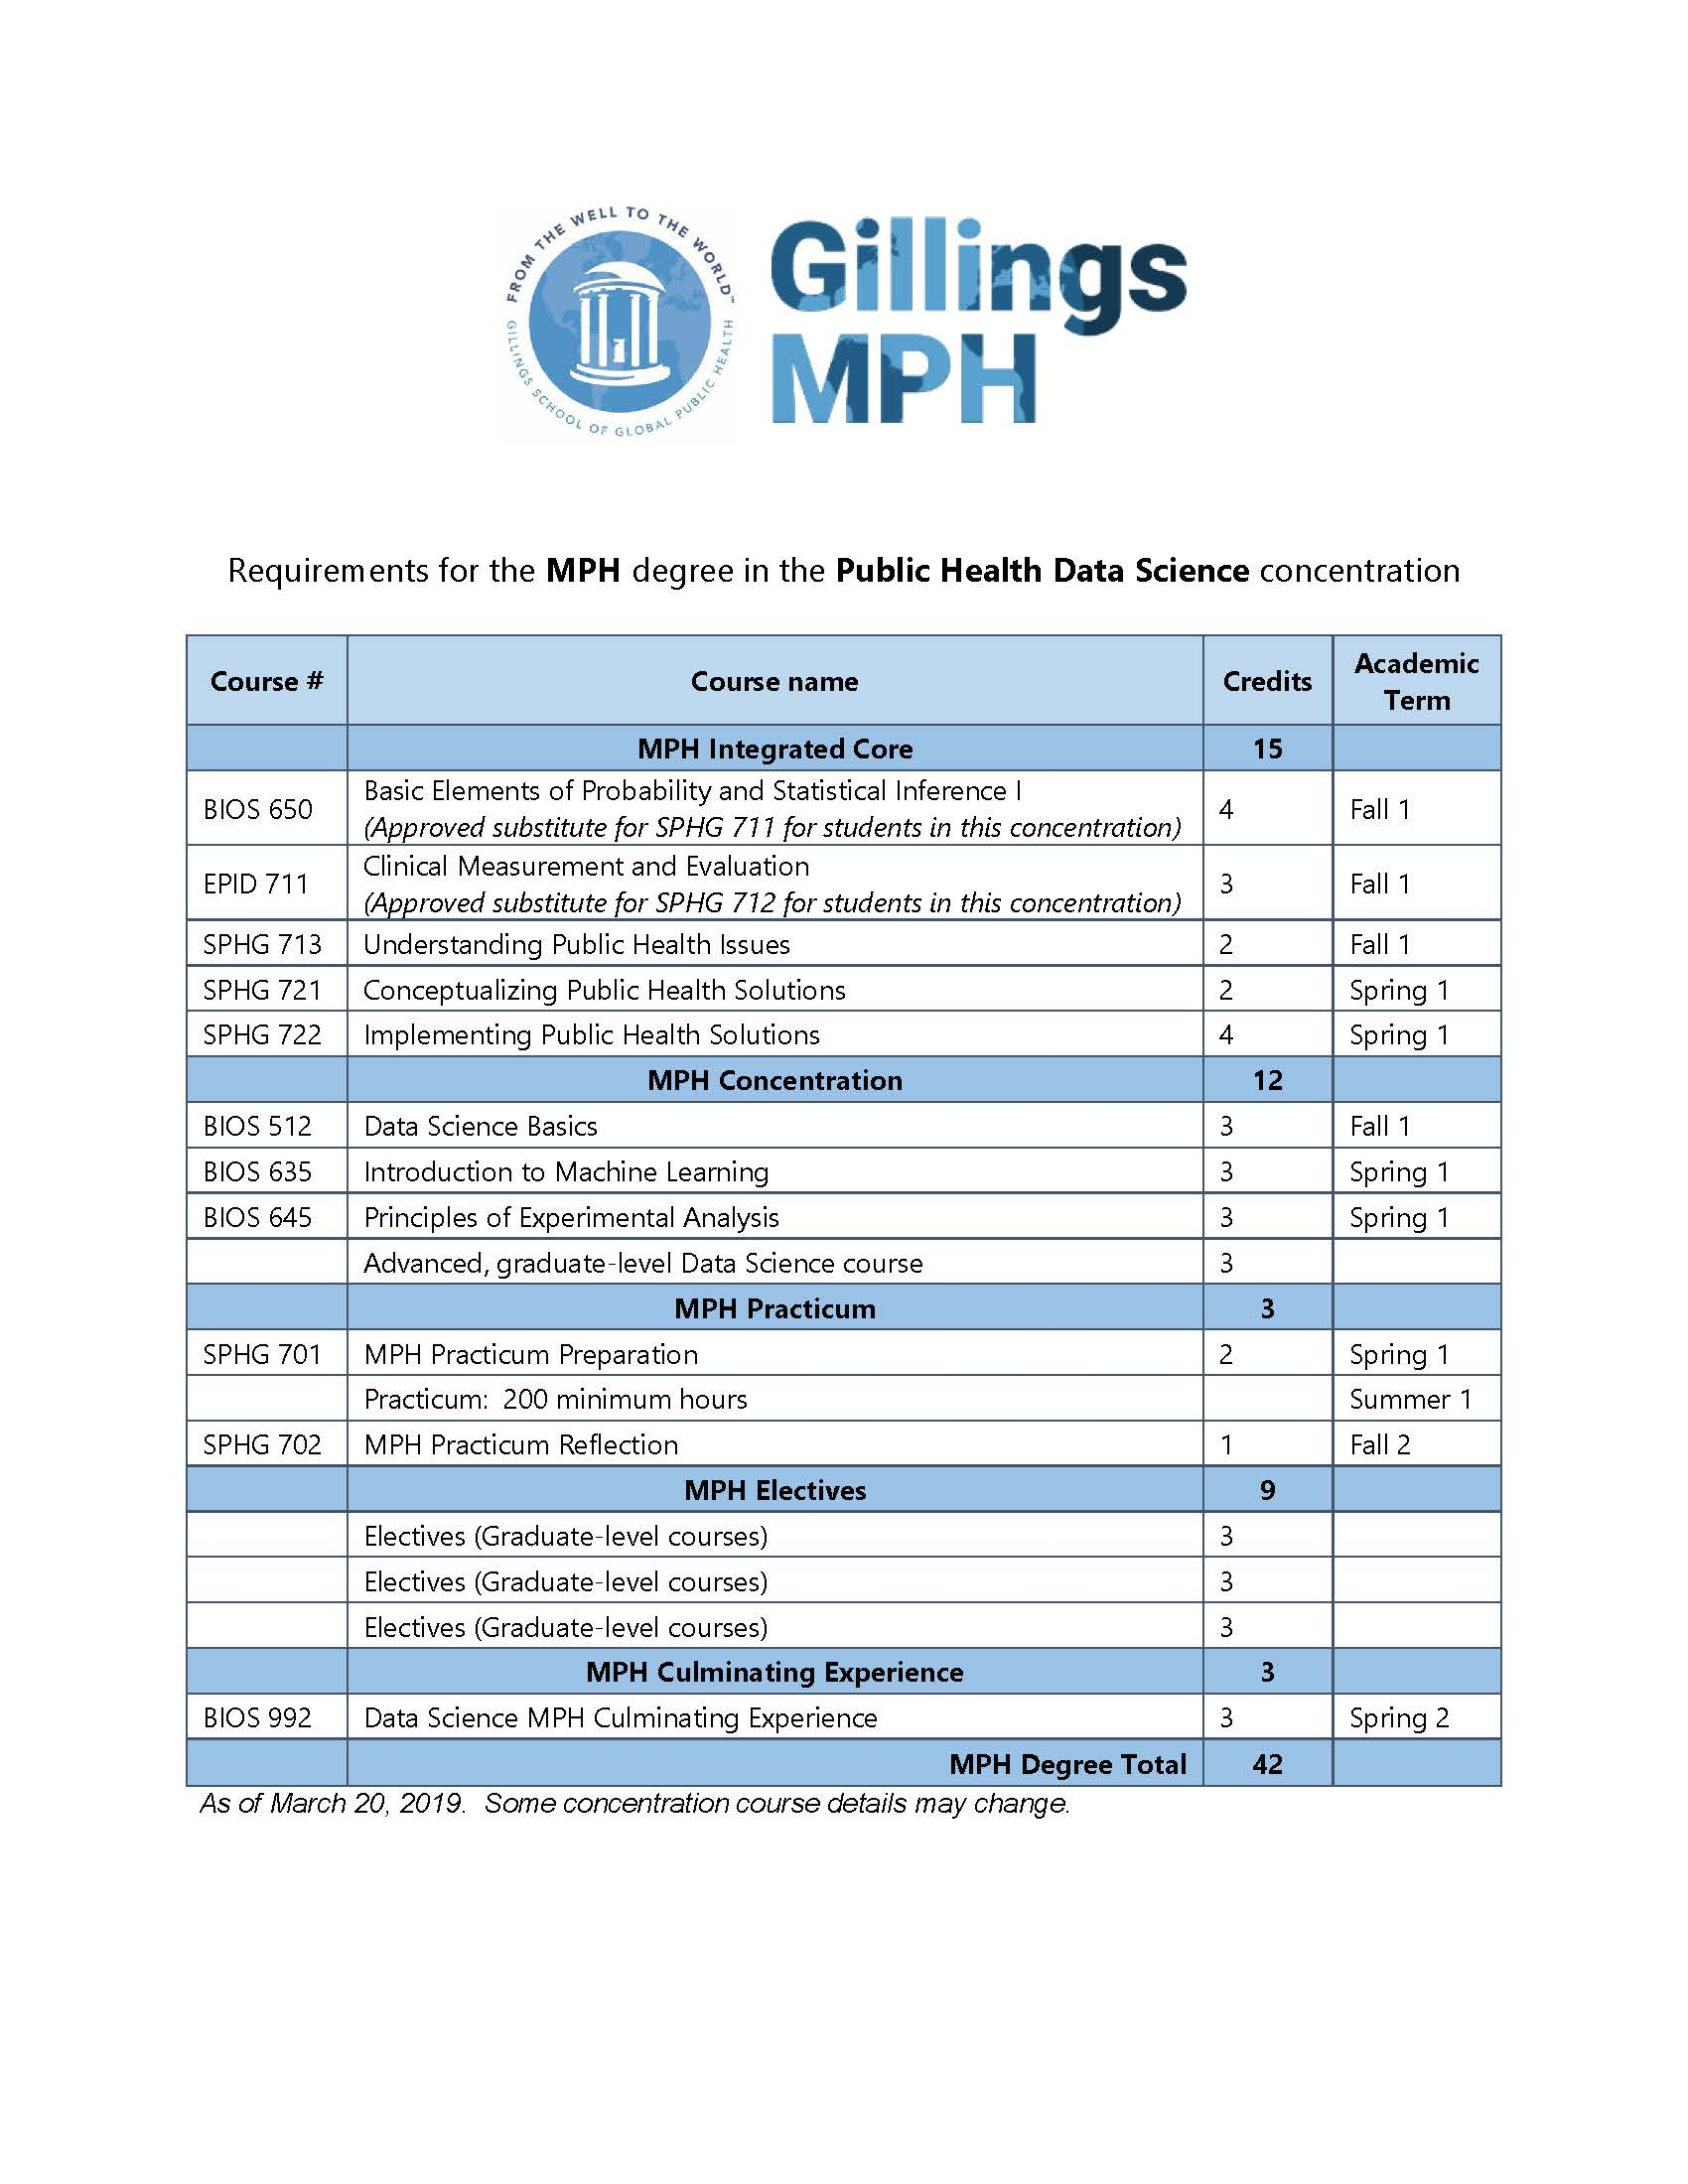 Course requirements for MPH degree in Data Science; also available as PDF